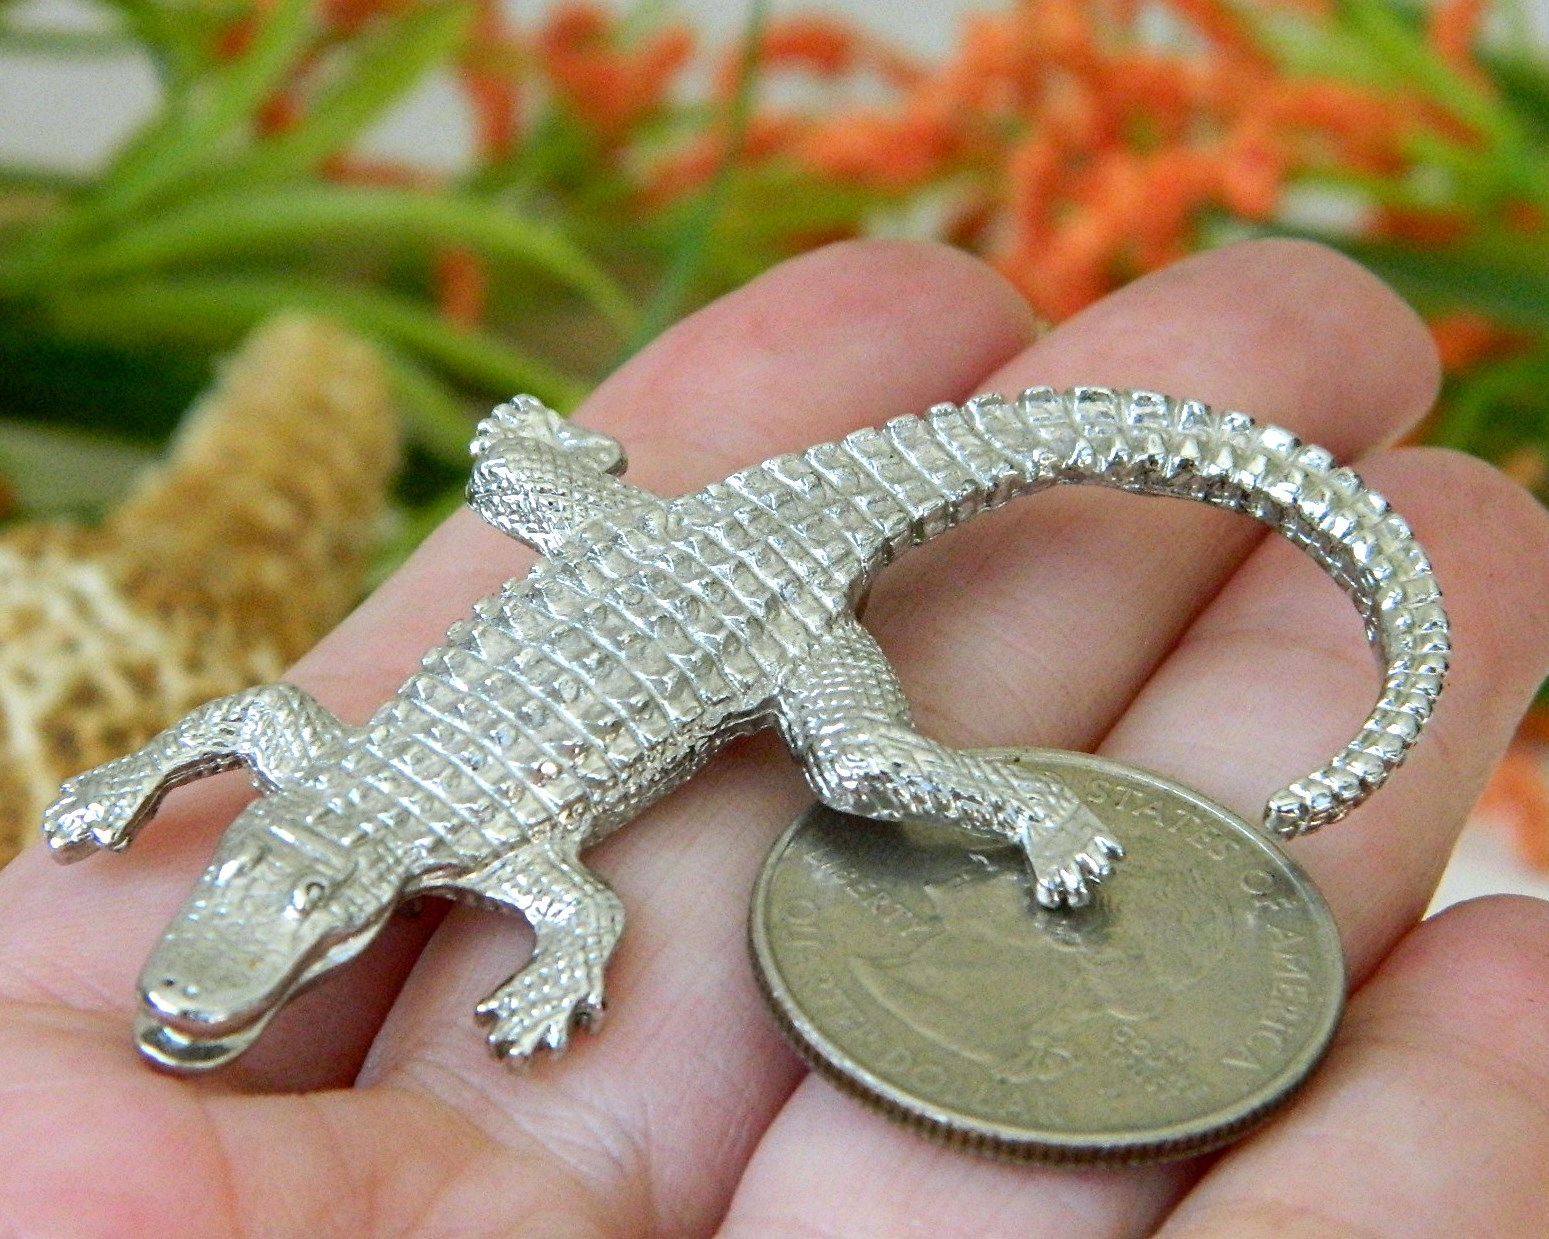 Vintage Alligator Crocodile Brooch Pin Figural Silver Tone  image 3